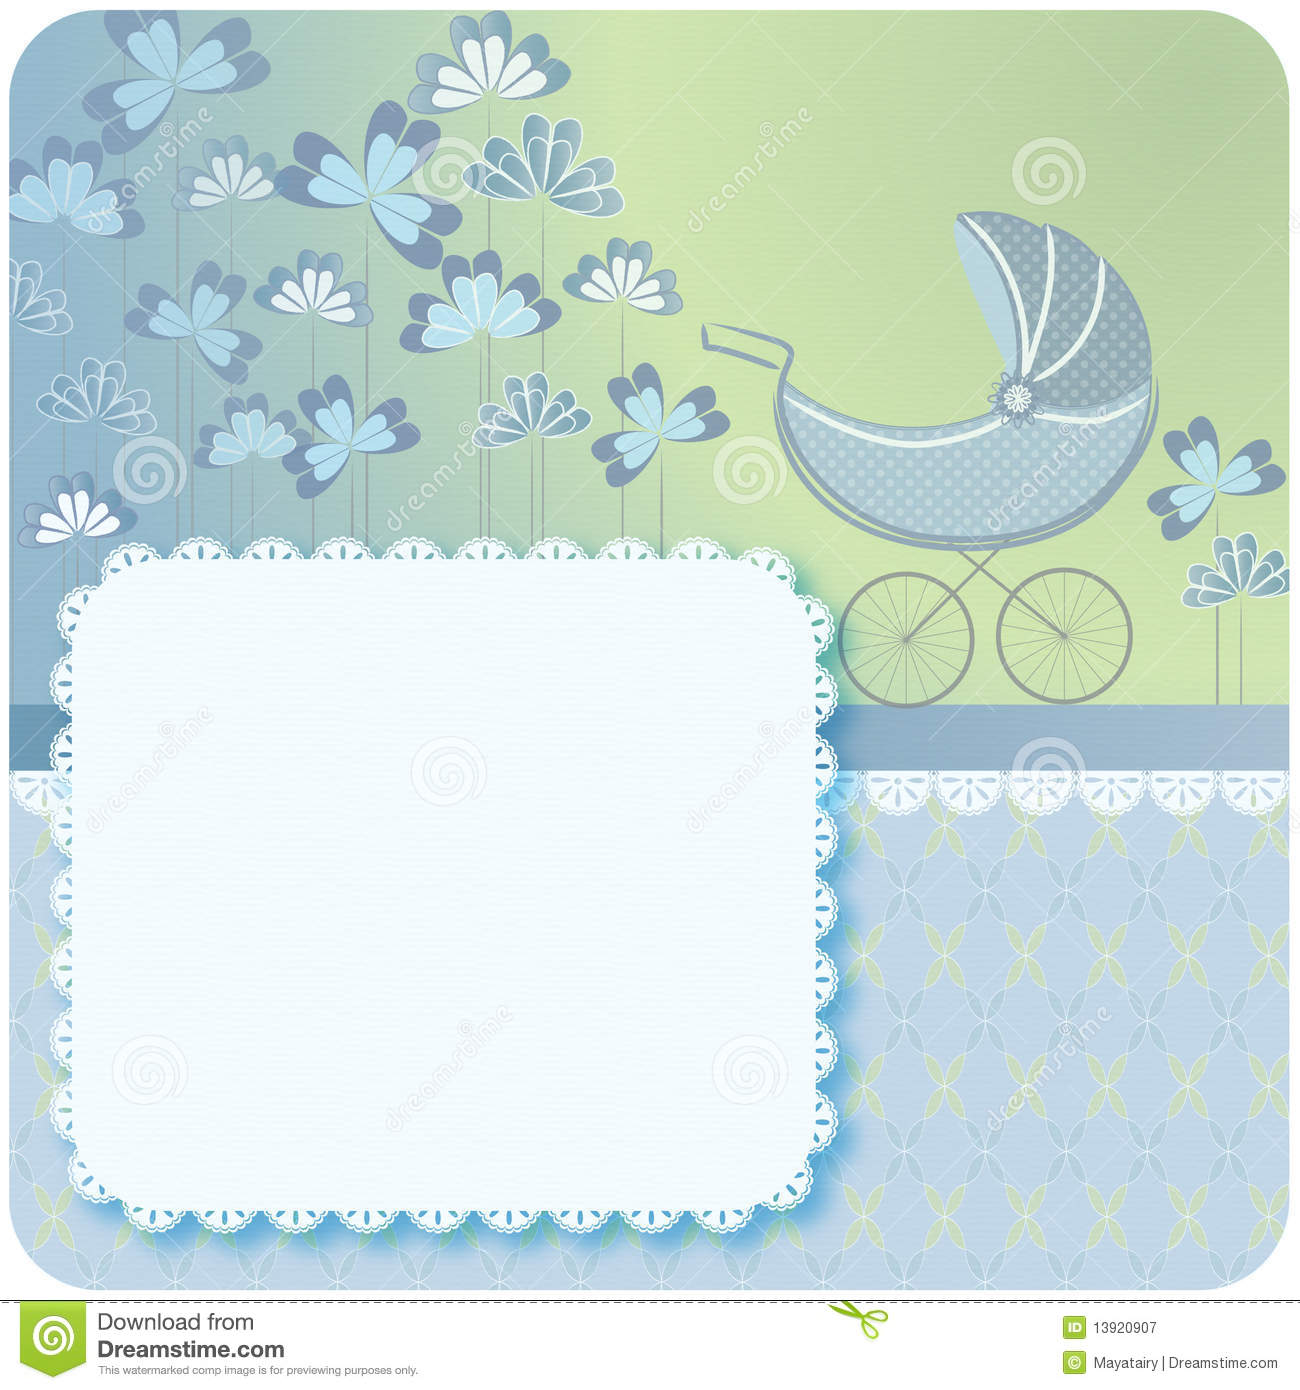 Newborn Baby Announcement Royalty Free Stock Photography ...